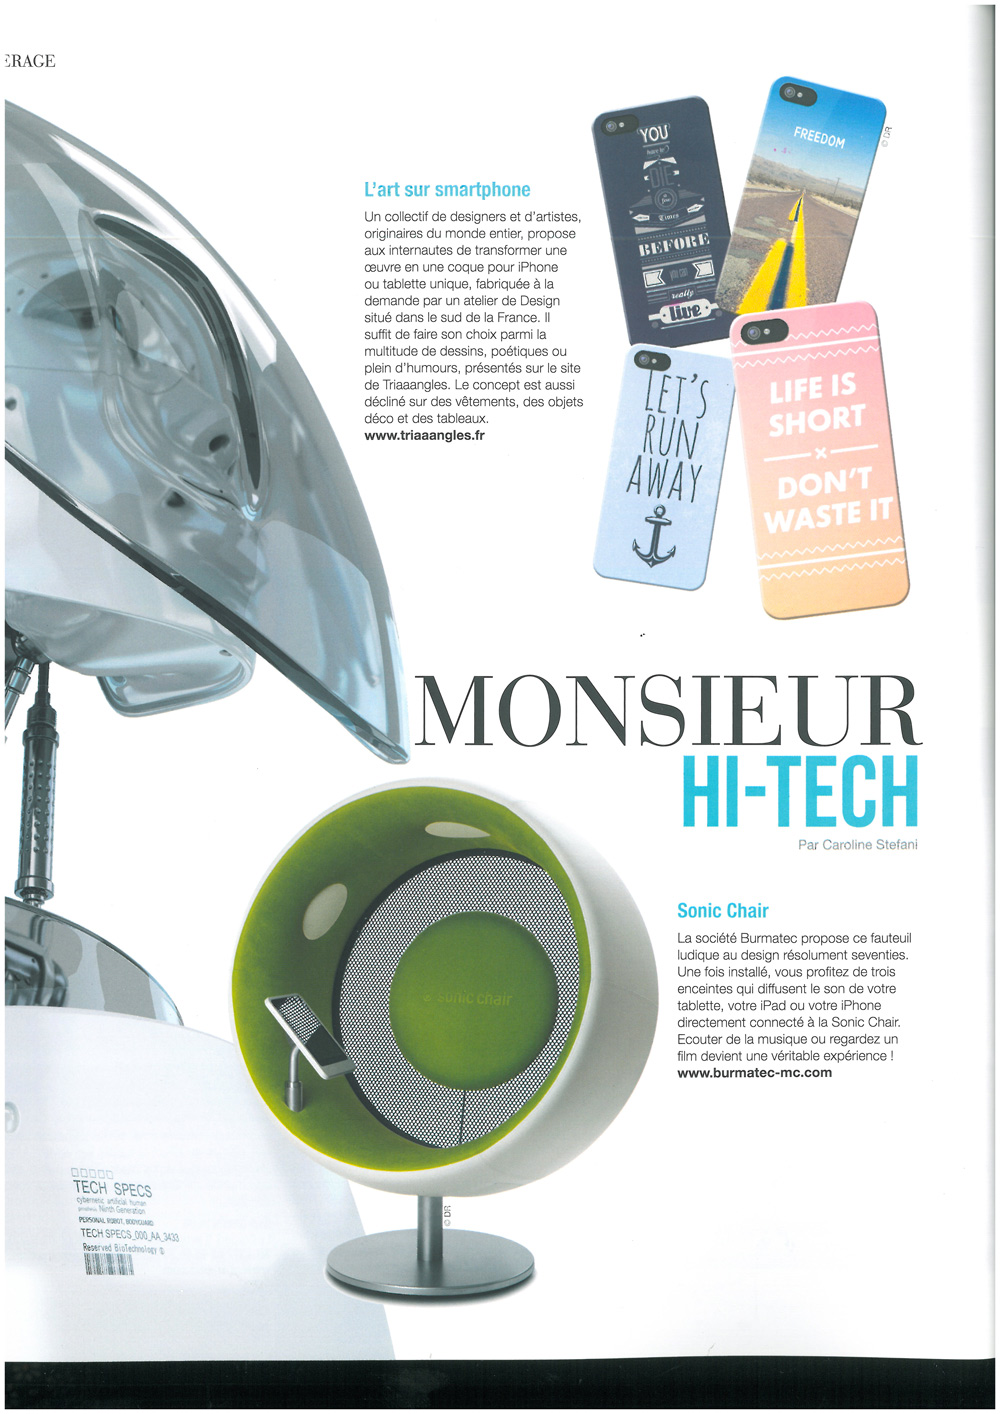 MONACO-MONSIEUR---ARTICLE-SONIC-CHAIR_Page_2